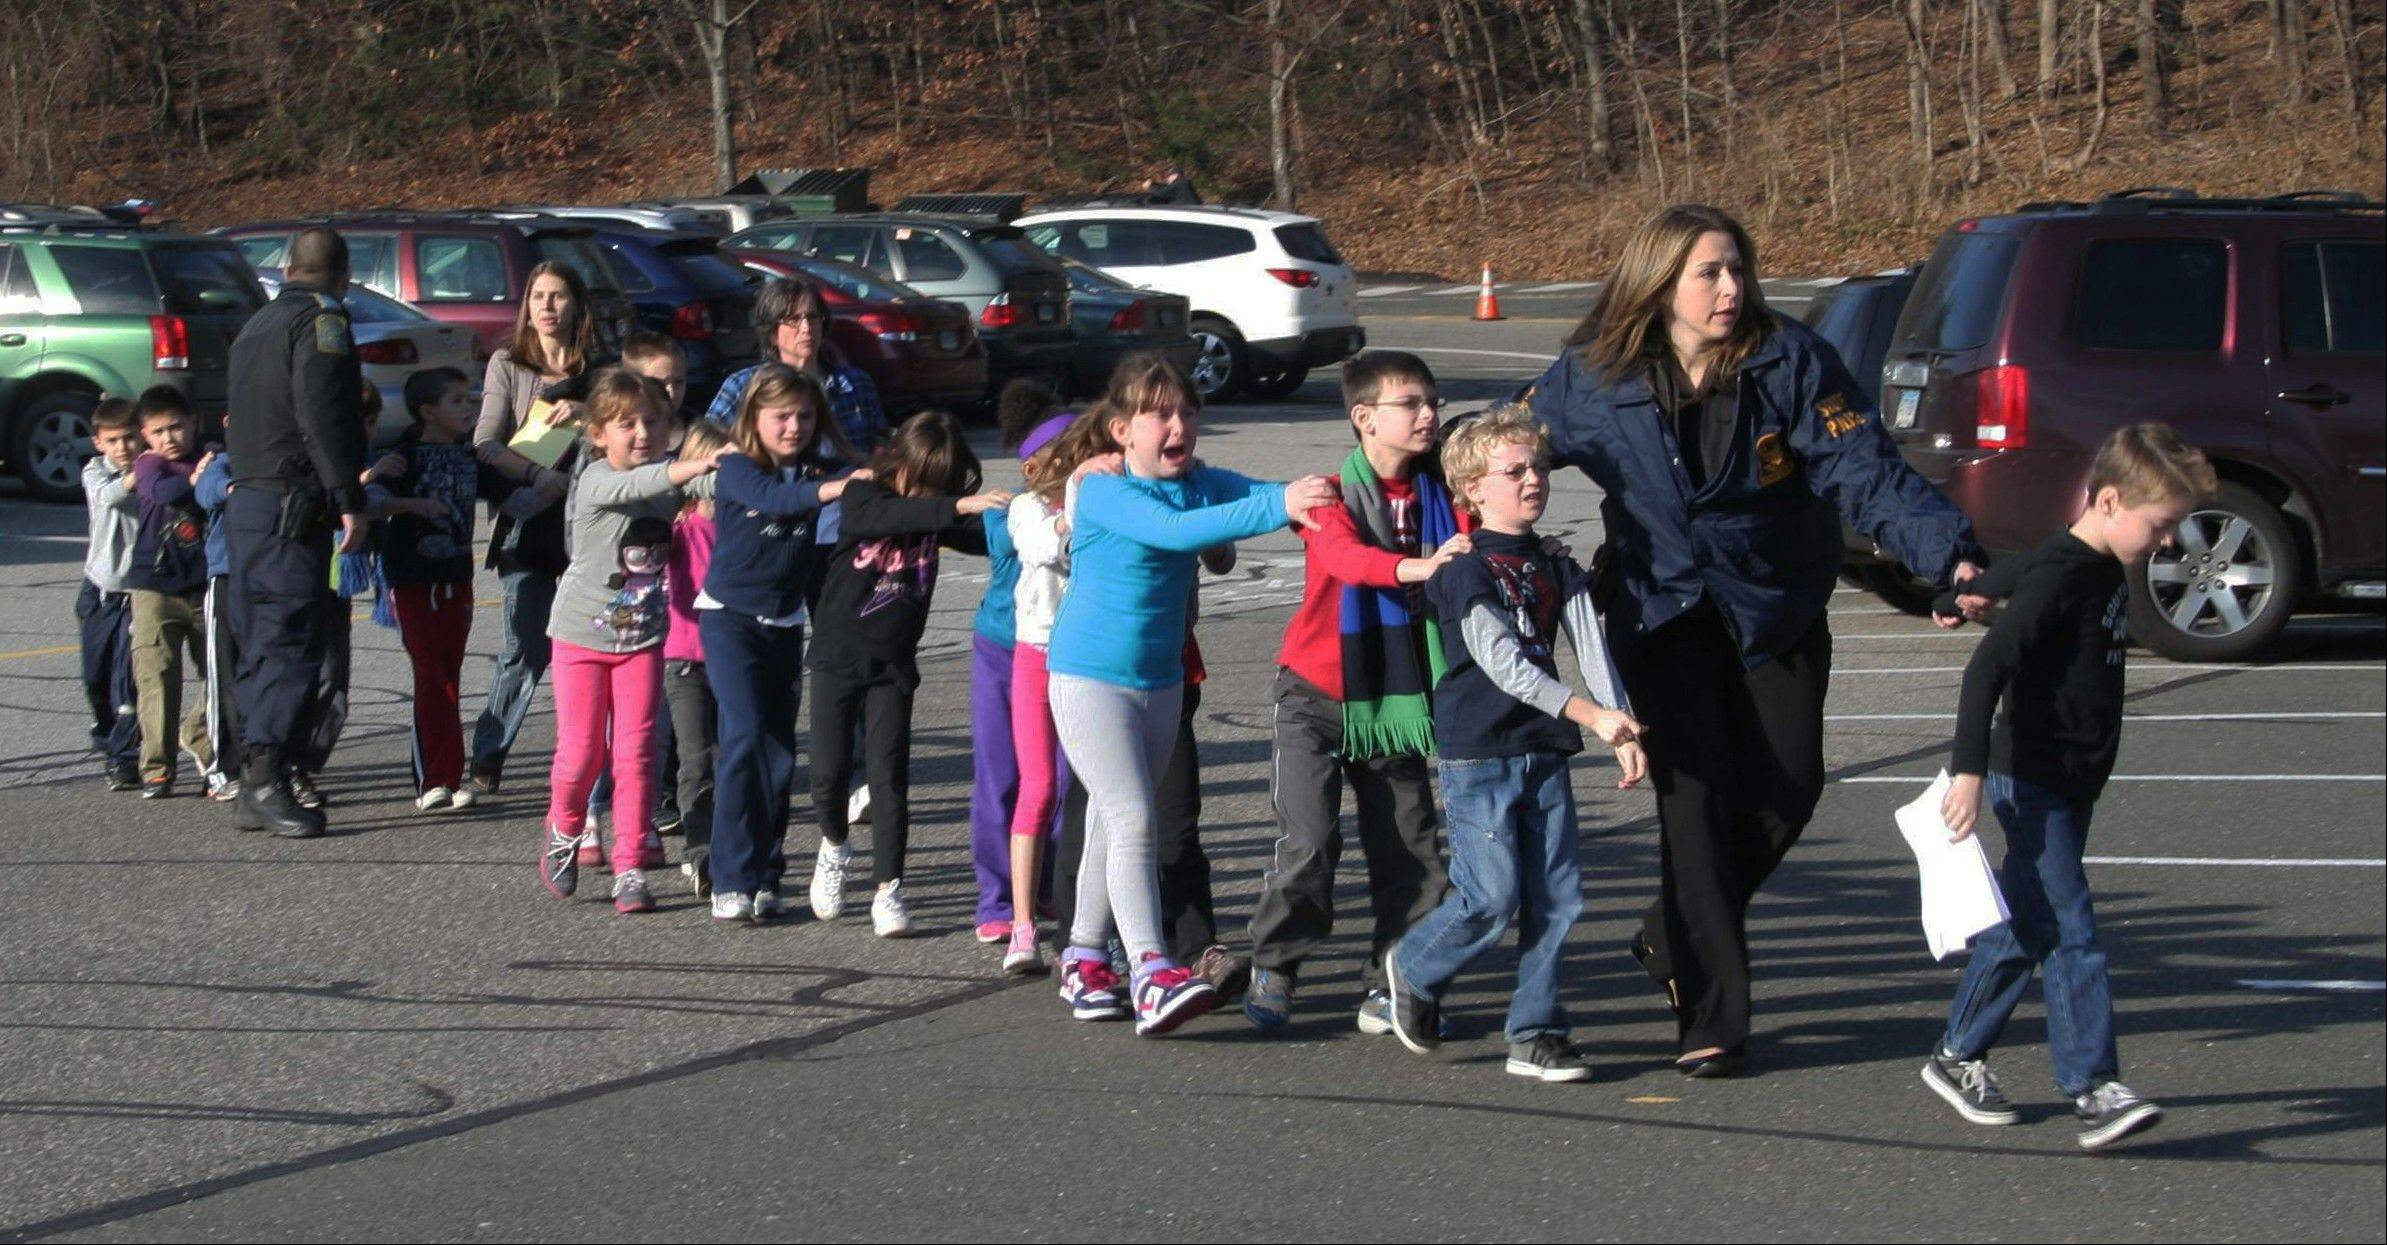 In this Friday, Dec. 14 photo Connecticut State Police lead a line of children from the Sandy Hook Elementary School in Newtown, Conn. after a shooting at the school.